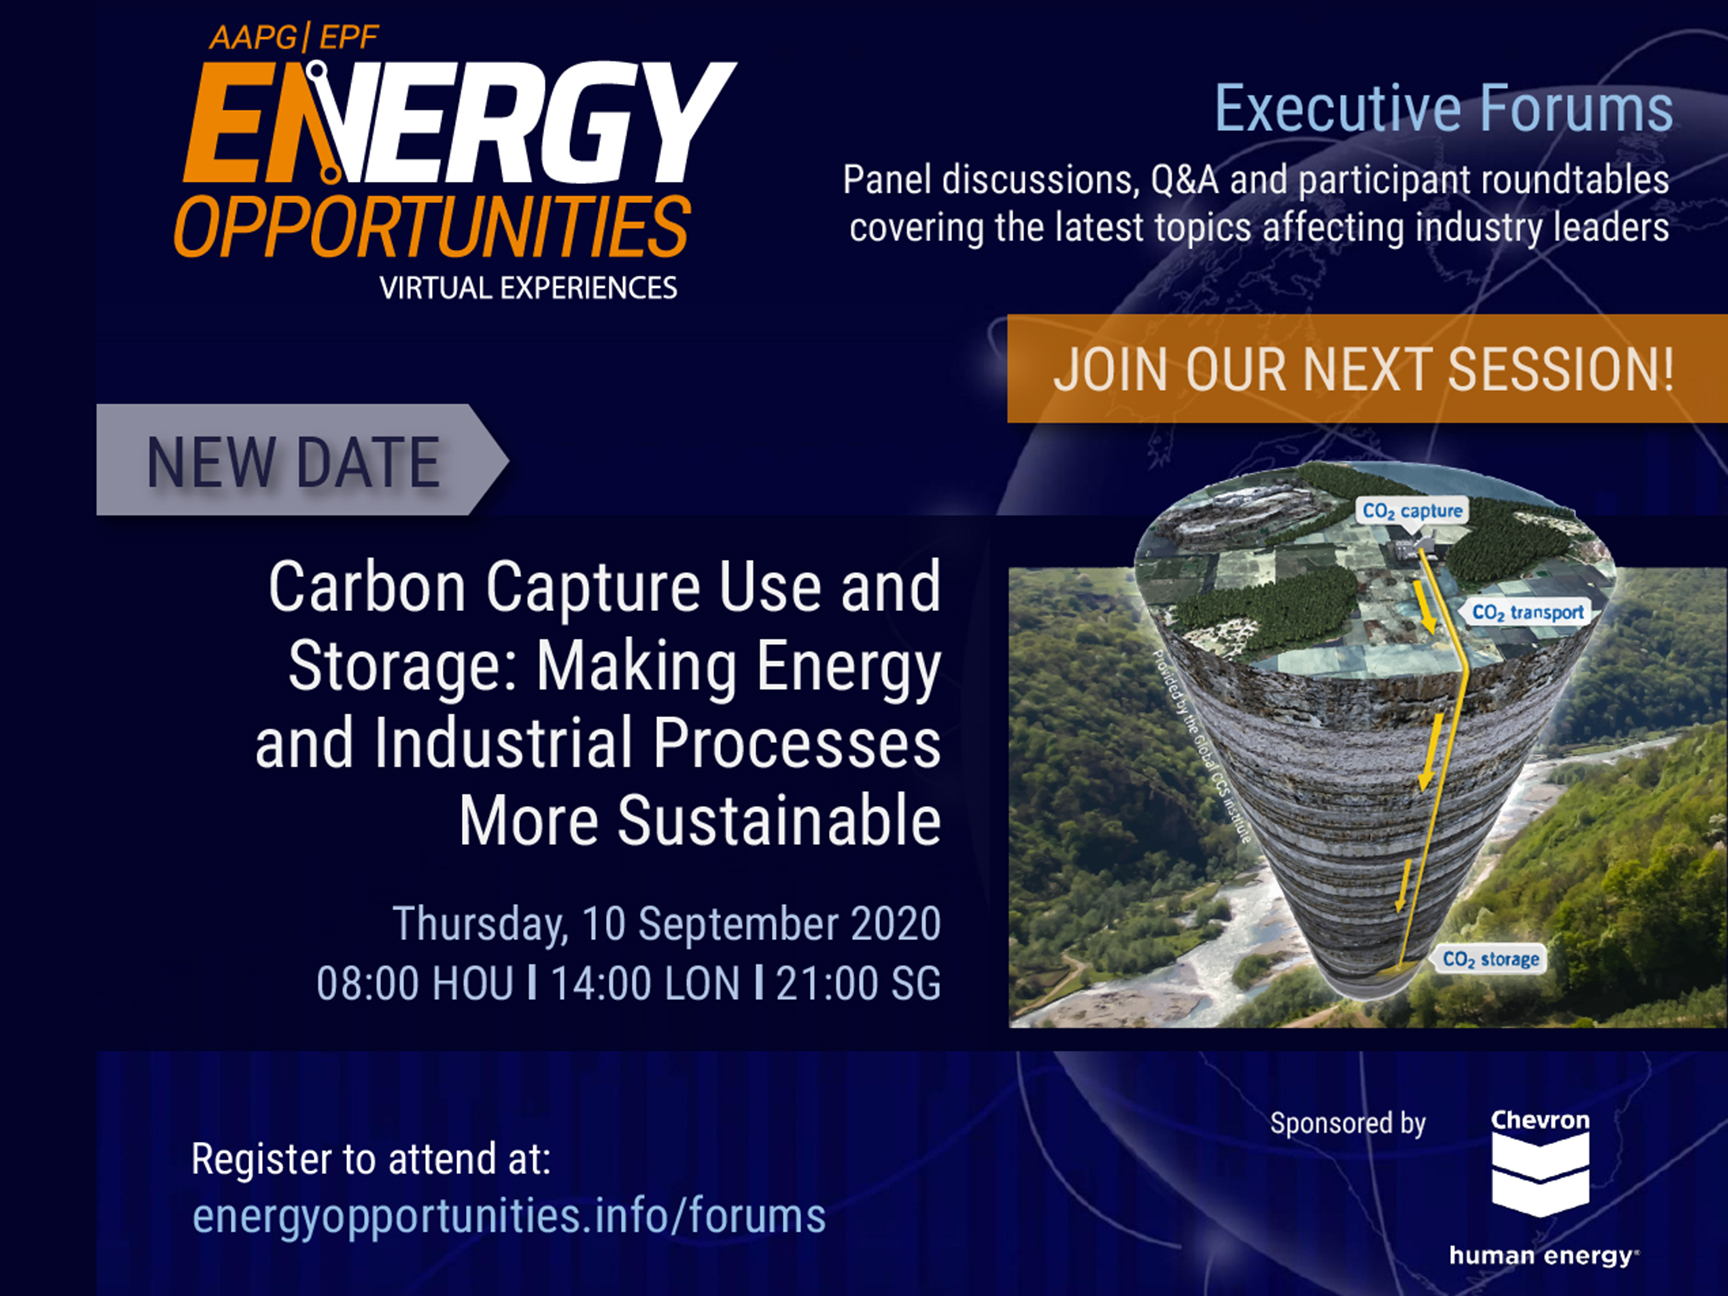 AAPG/EPF Energy Opportunities Forum: Carbon Capture Use and Storage – Making Petroleum and Industrial Processes More Sustainable